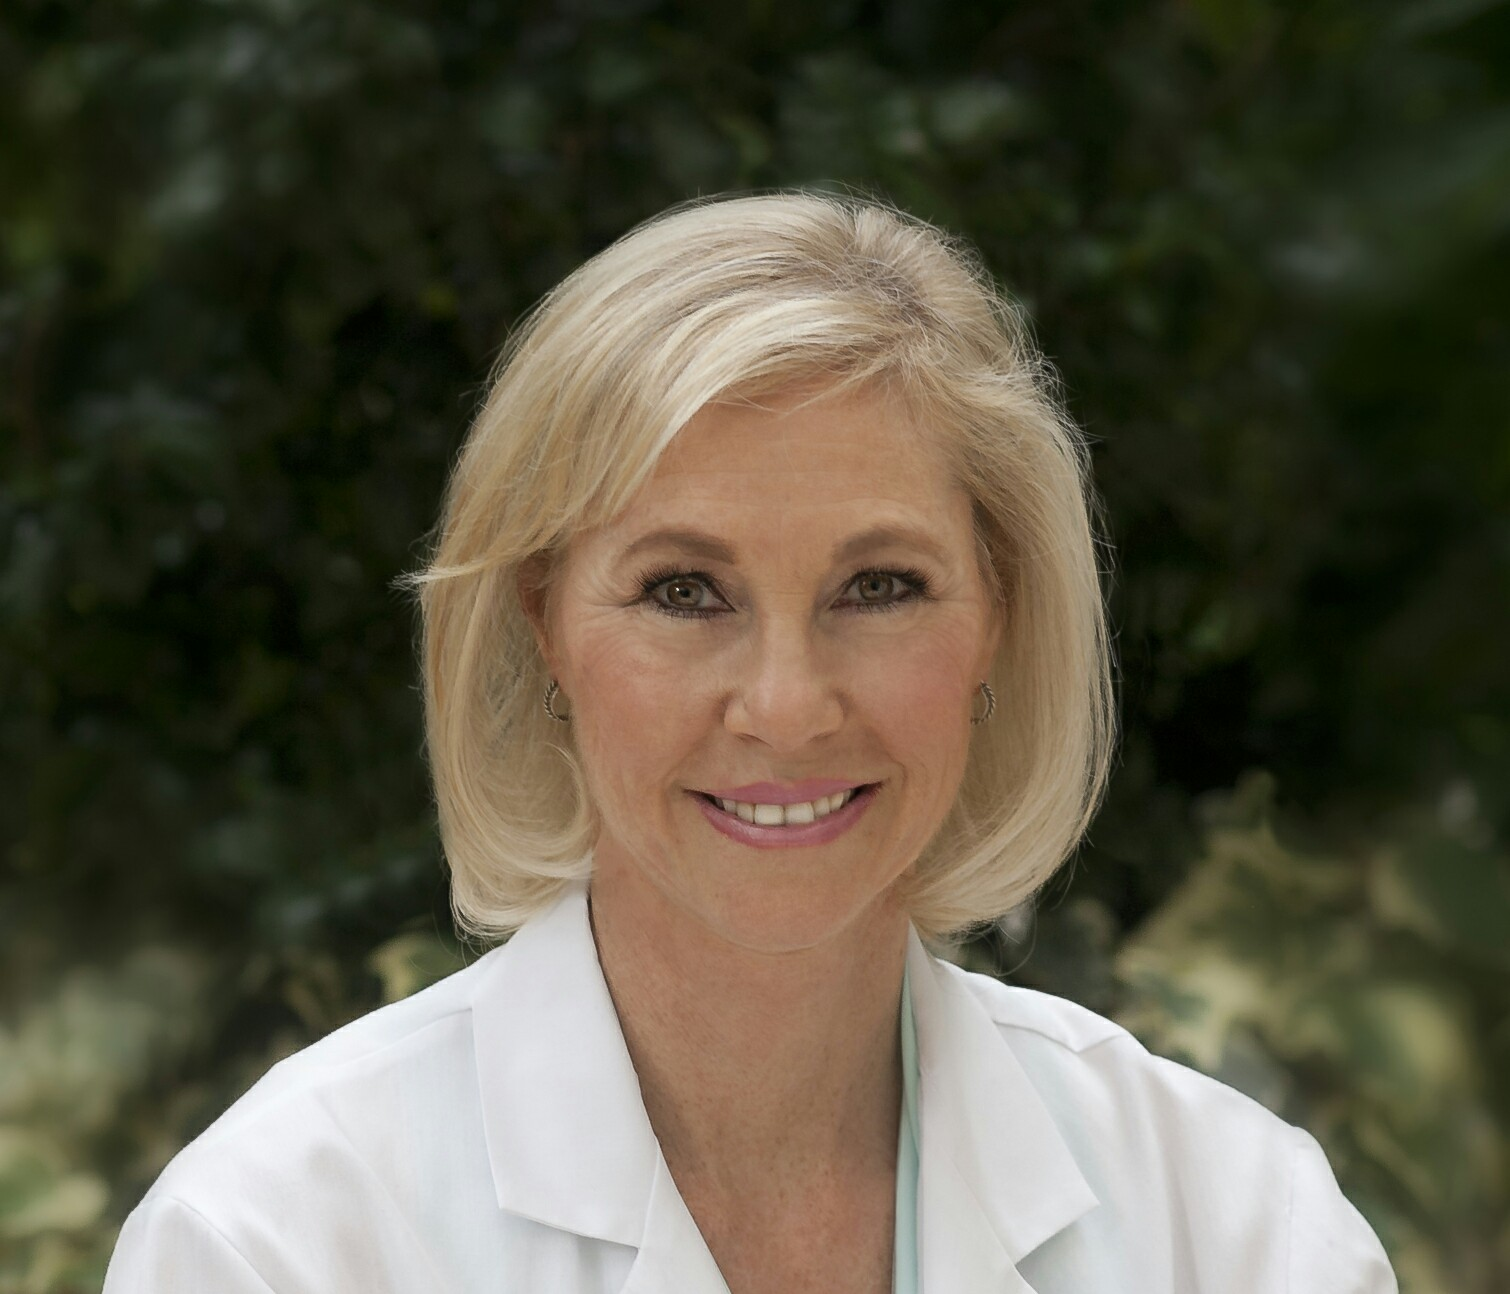 Tina B Koopersmith, MD